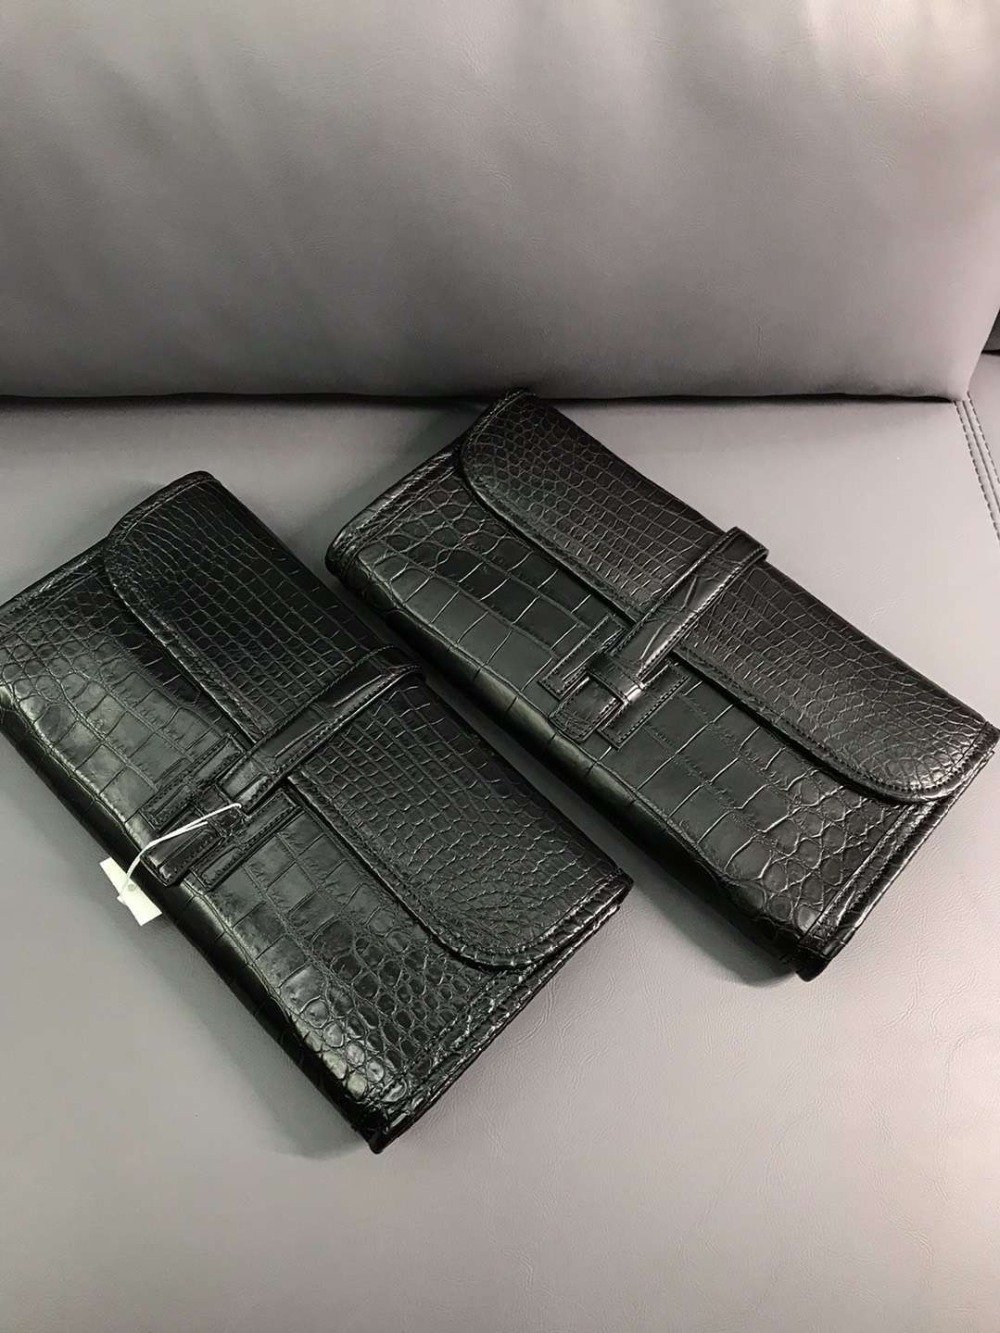 100% REAL genuine crocodile leather skin women wallet long size wallet evening clutch for lady black color matt crocodile skin 100% REAL genuine crocodile leather skin women wallet long size wallet evening clutch for lady black color matt crocodile skin